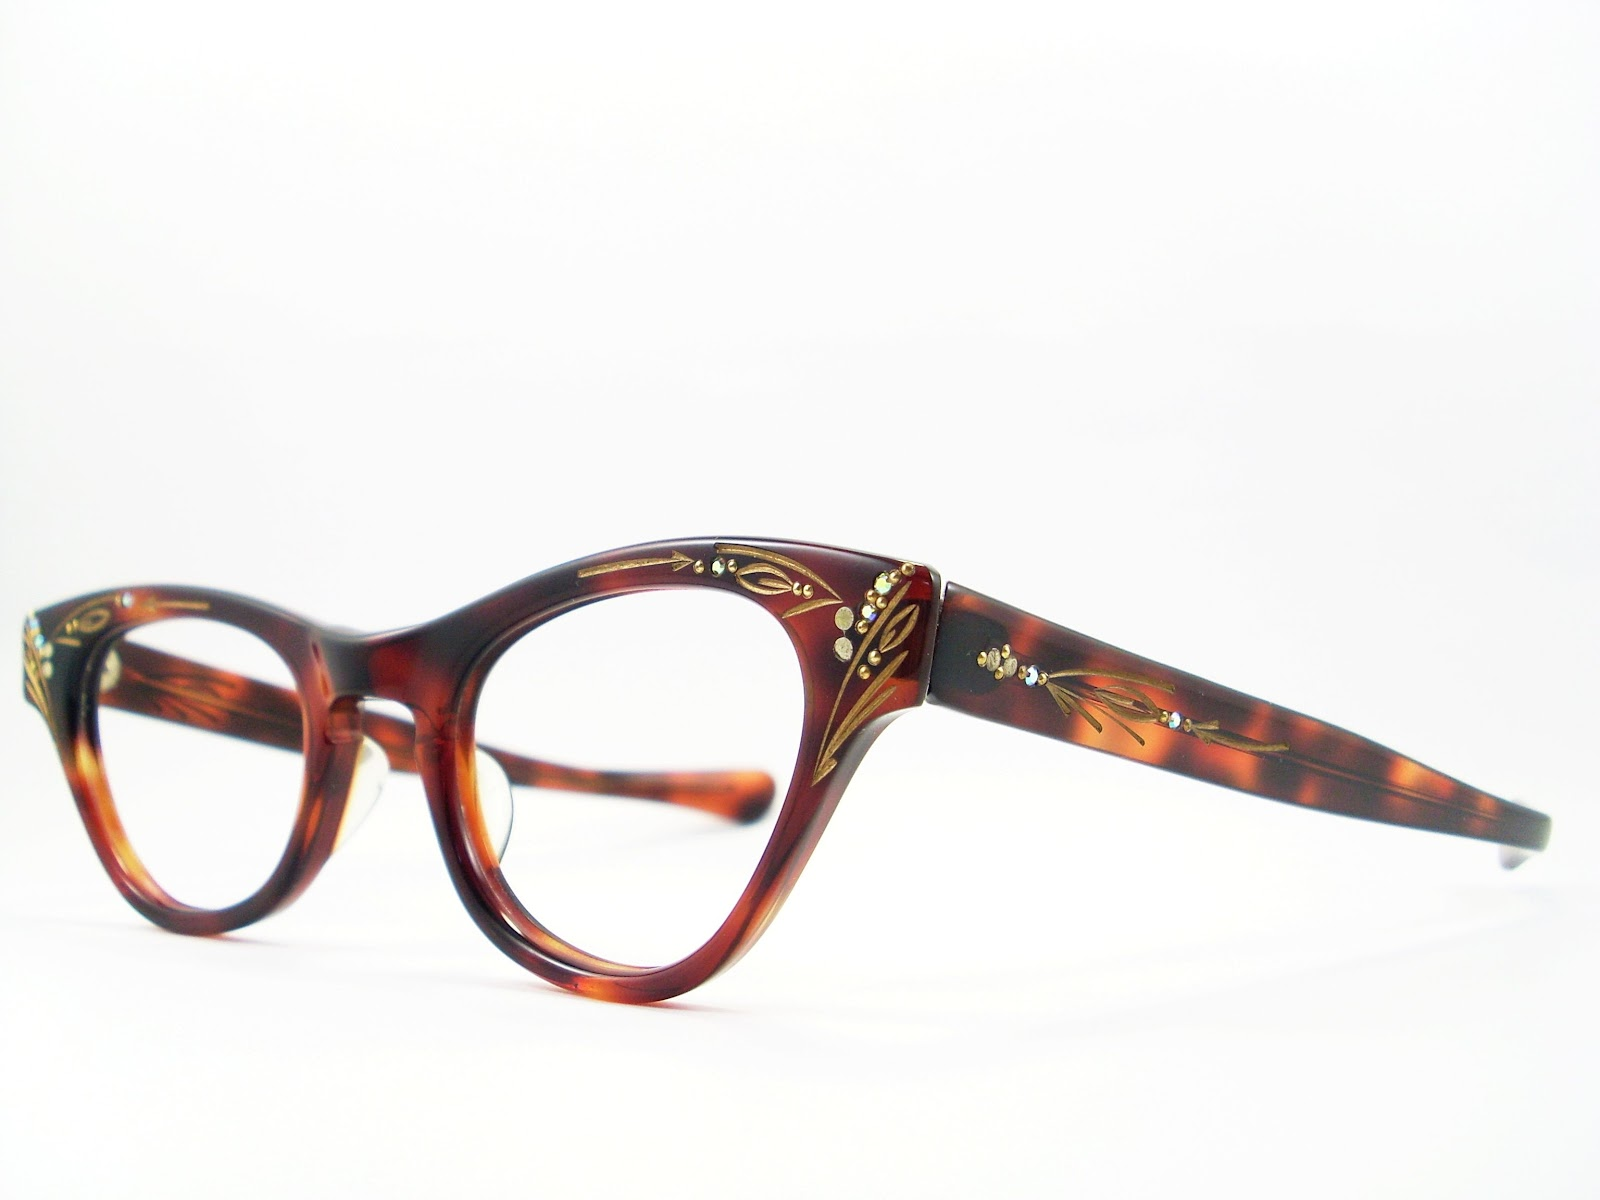 7f76ea39536 50 s Cat Eye Glasses Frames